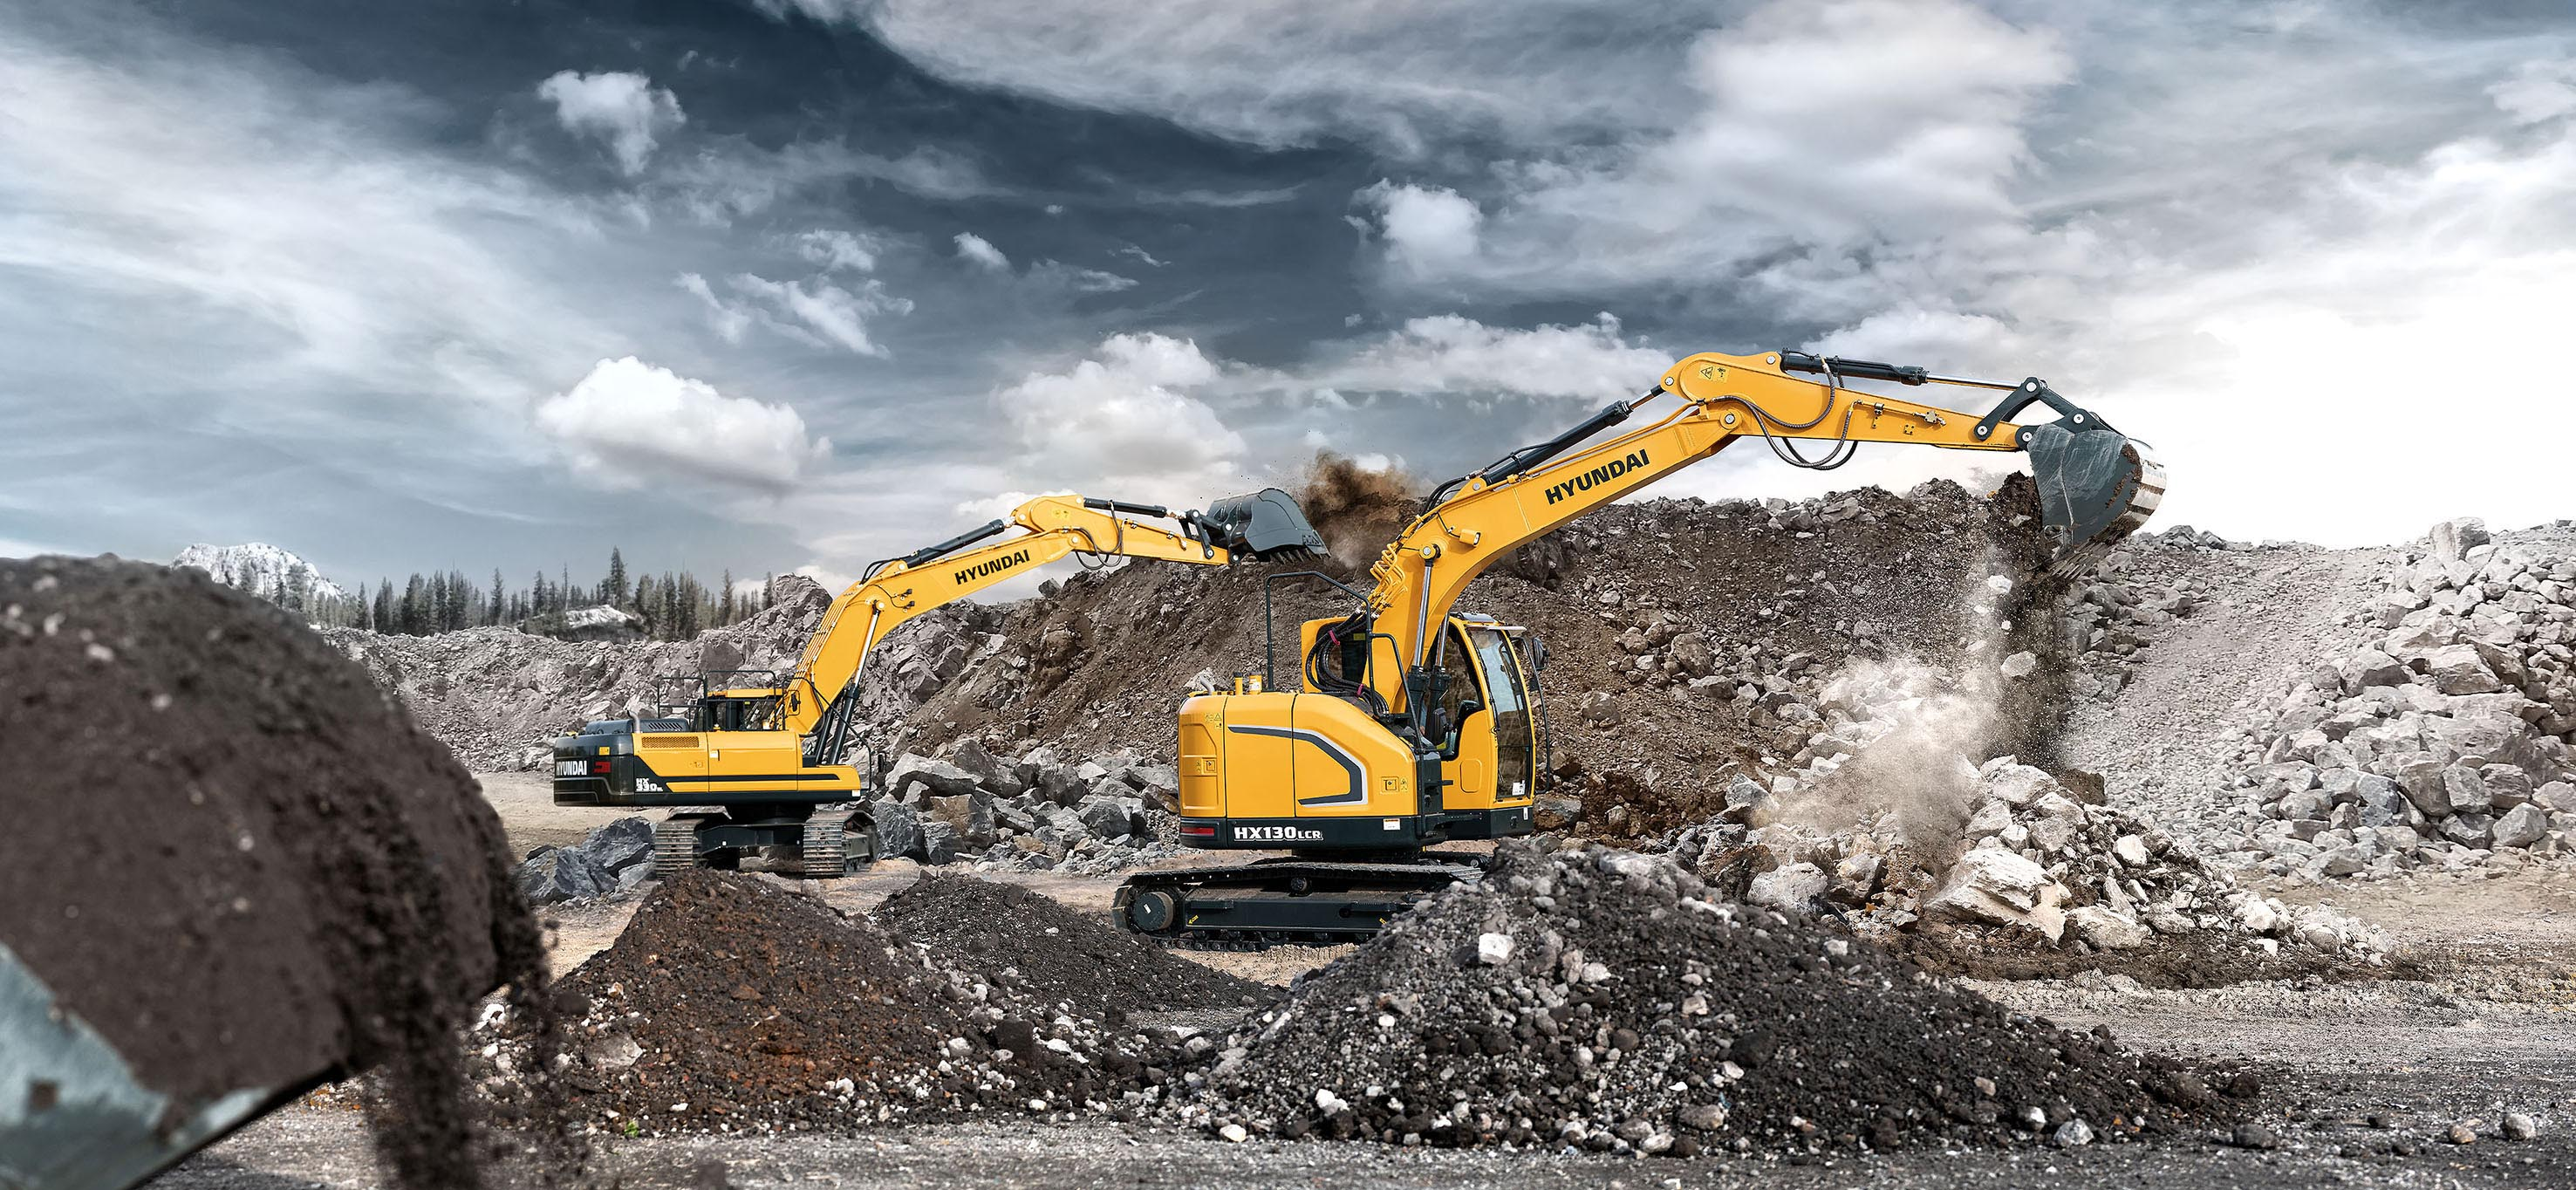 Arthur Los Fotografie - Hyundai Construction Equipment Europe